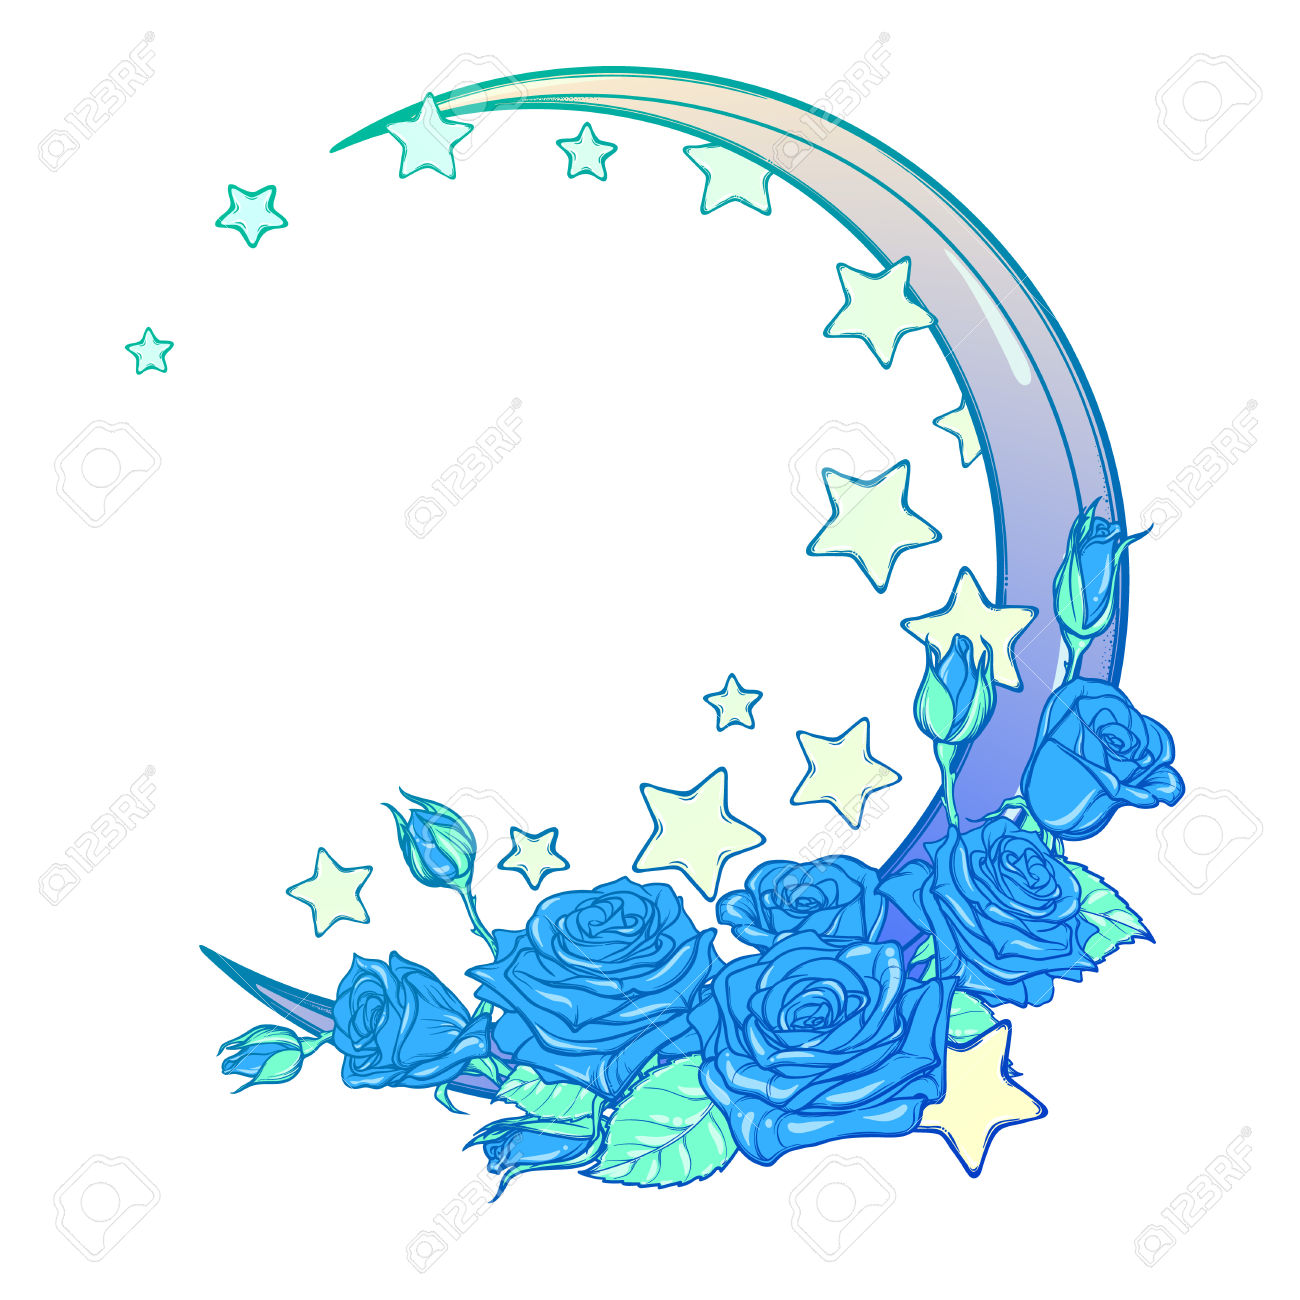 Kawaii Night Sky Composition With Roses, Stars And Moon Crescent.